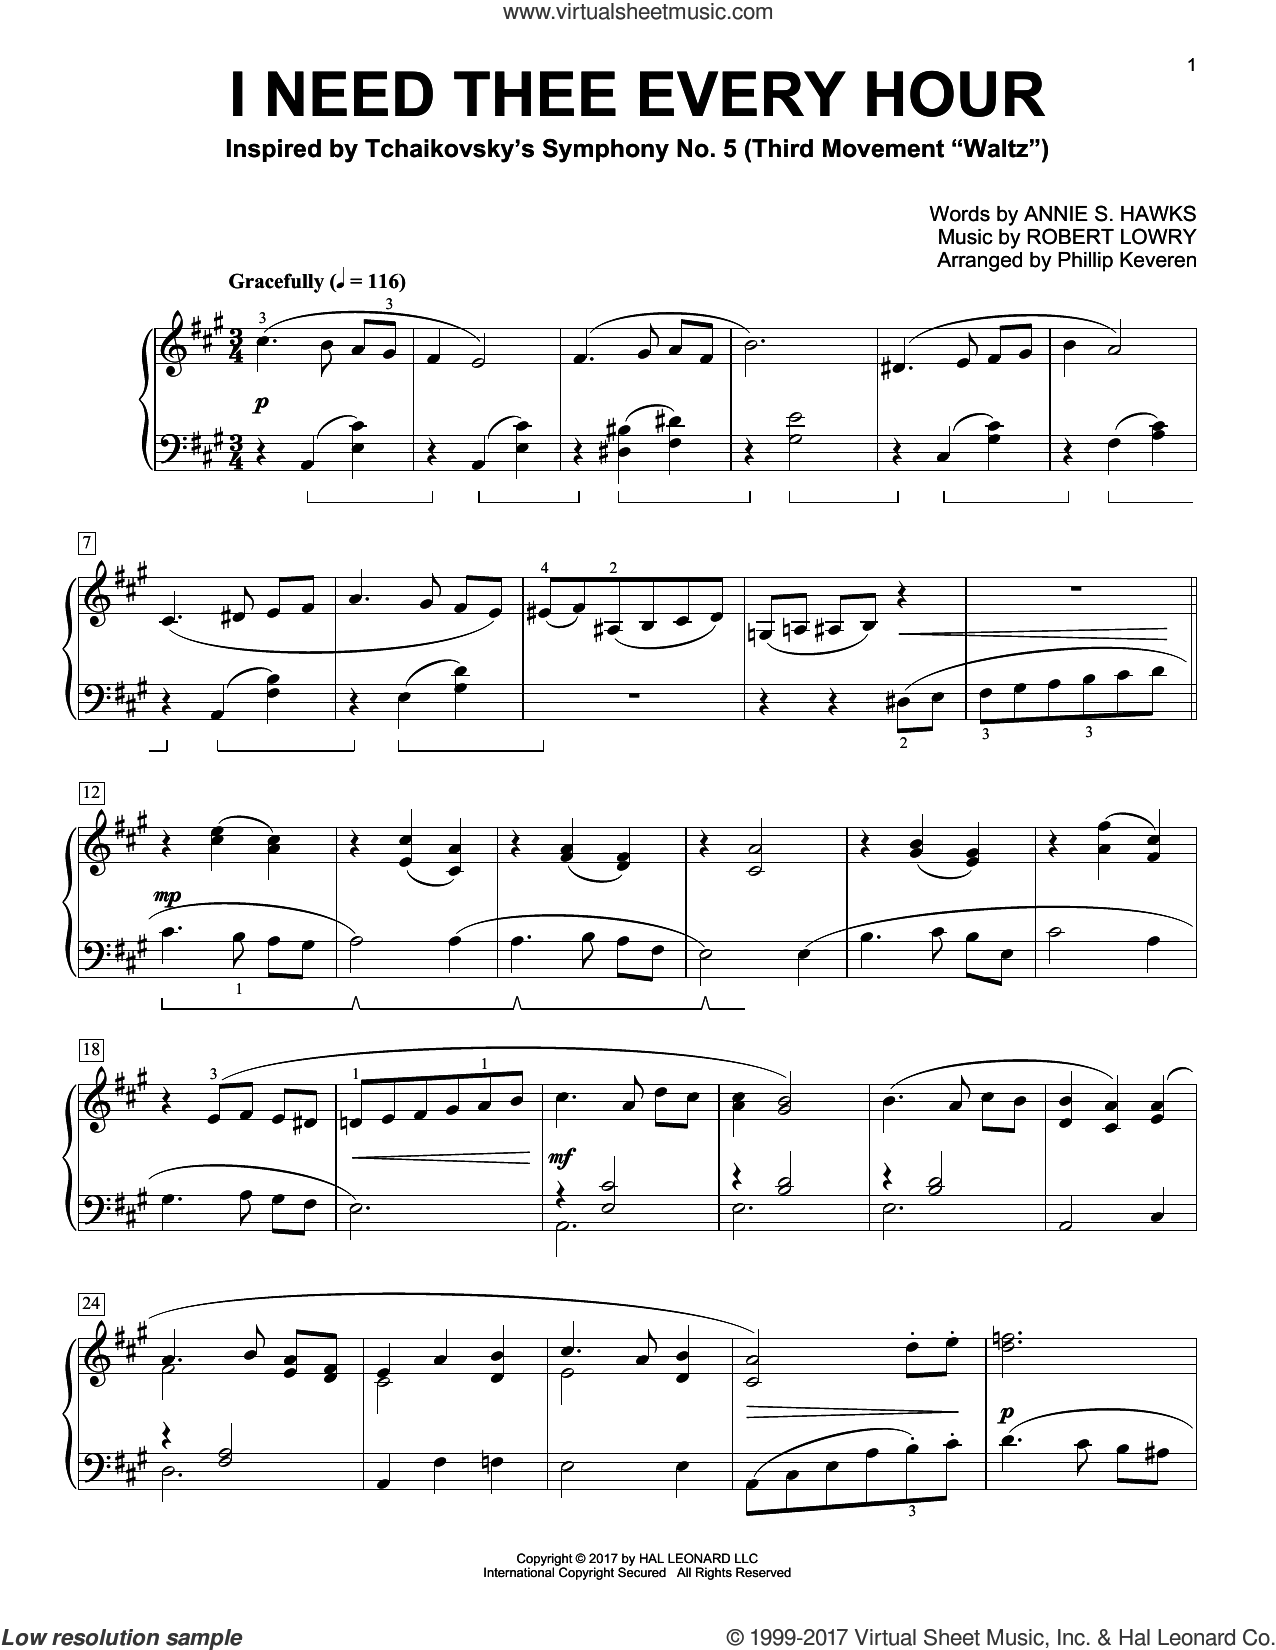 I Need Thee Every Hour sheet music for piano solo by Robert Lowry, Phillip Keveren and Annie S. Hawks, intermediate